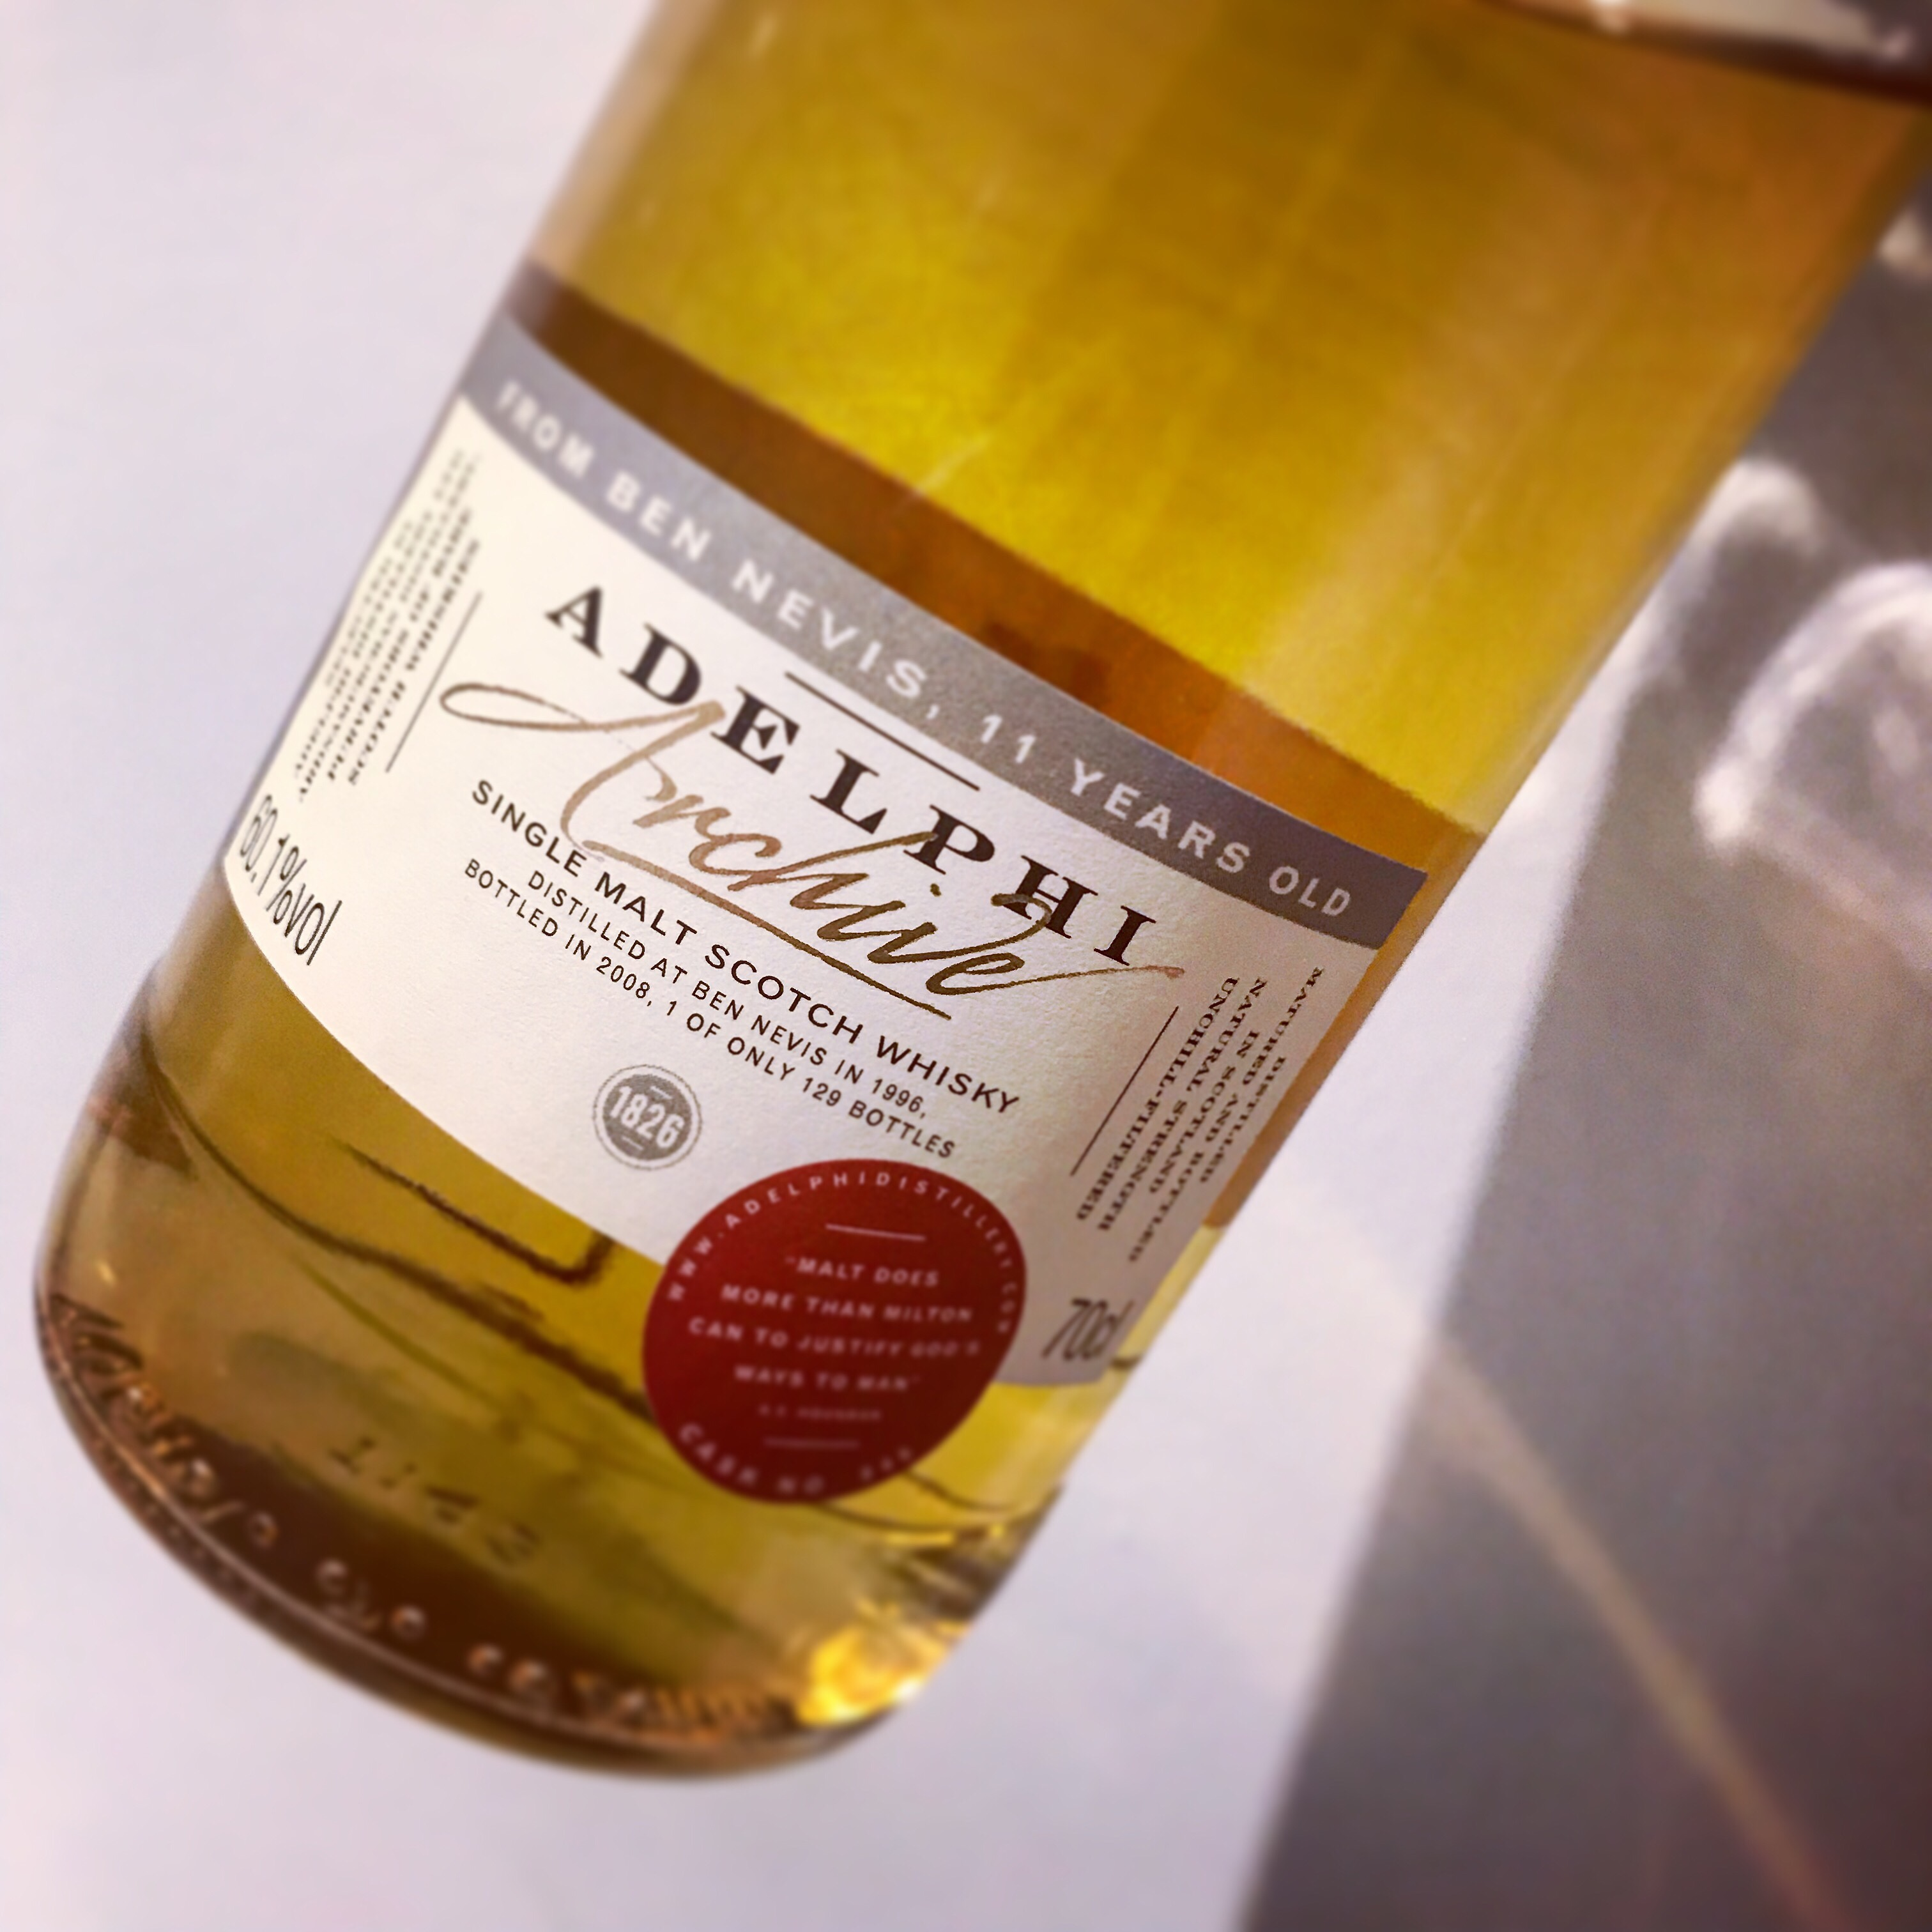 Whisky Review: Adelphi Archive Ben Nevis 1996 11 Years Old